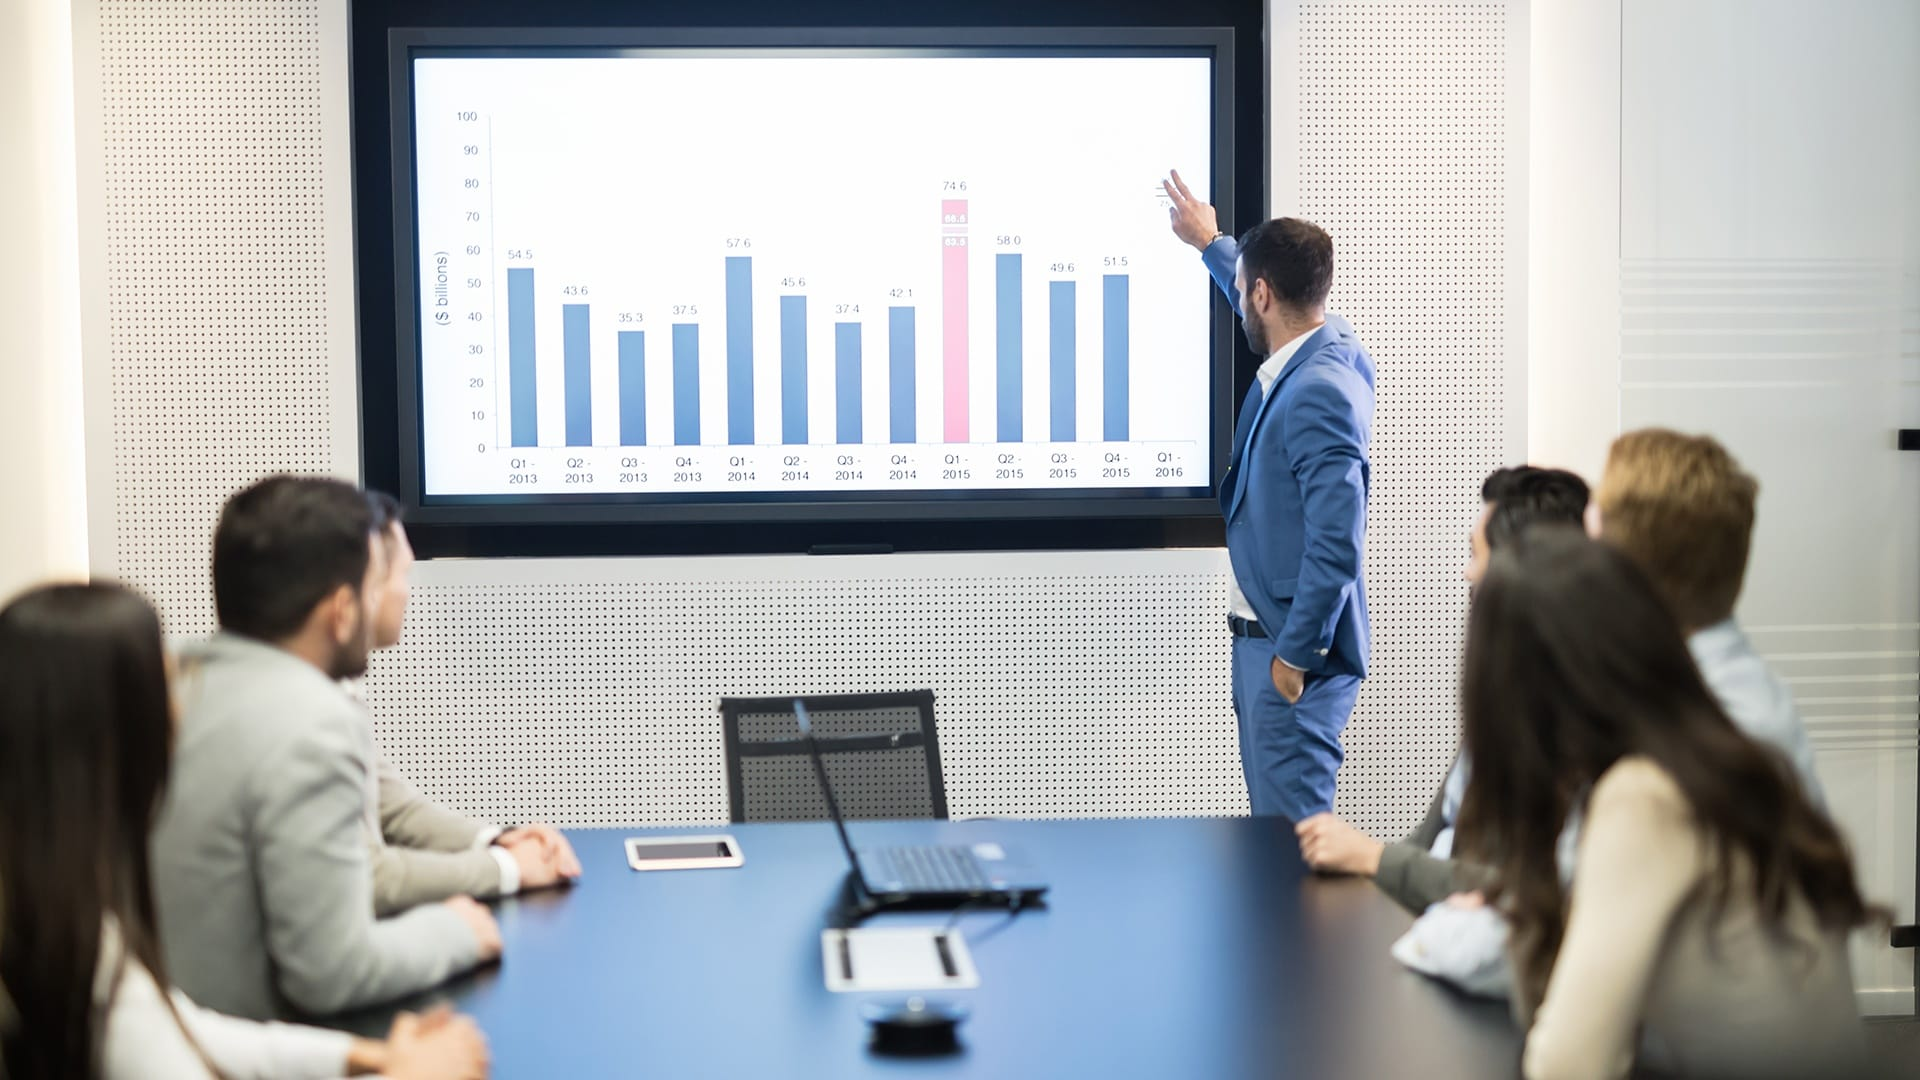 statistics, How to Balance Statistics in PowerPoint Presentations